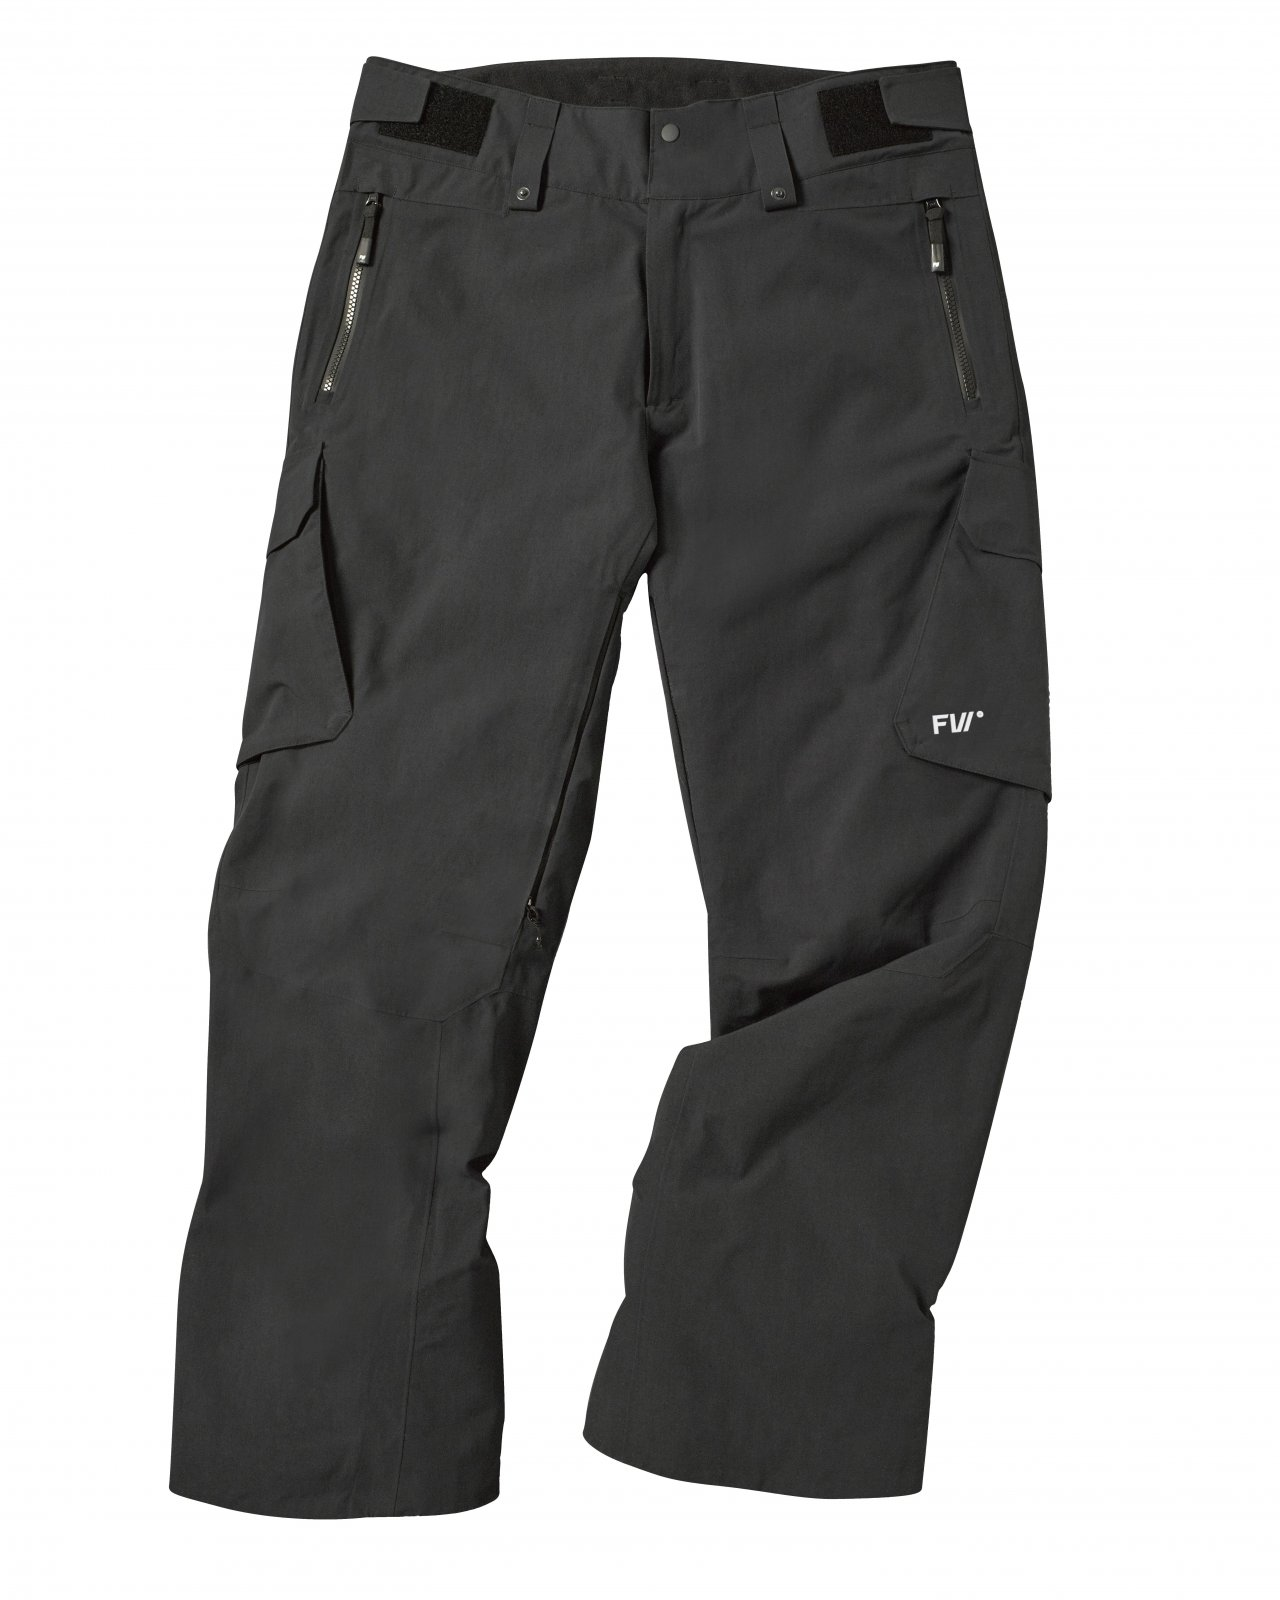 Forward Catalyst 2L Pant 19/20